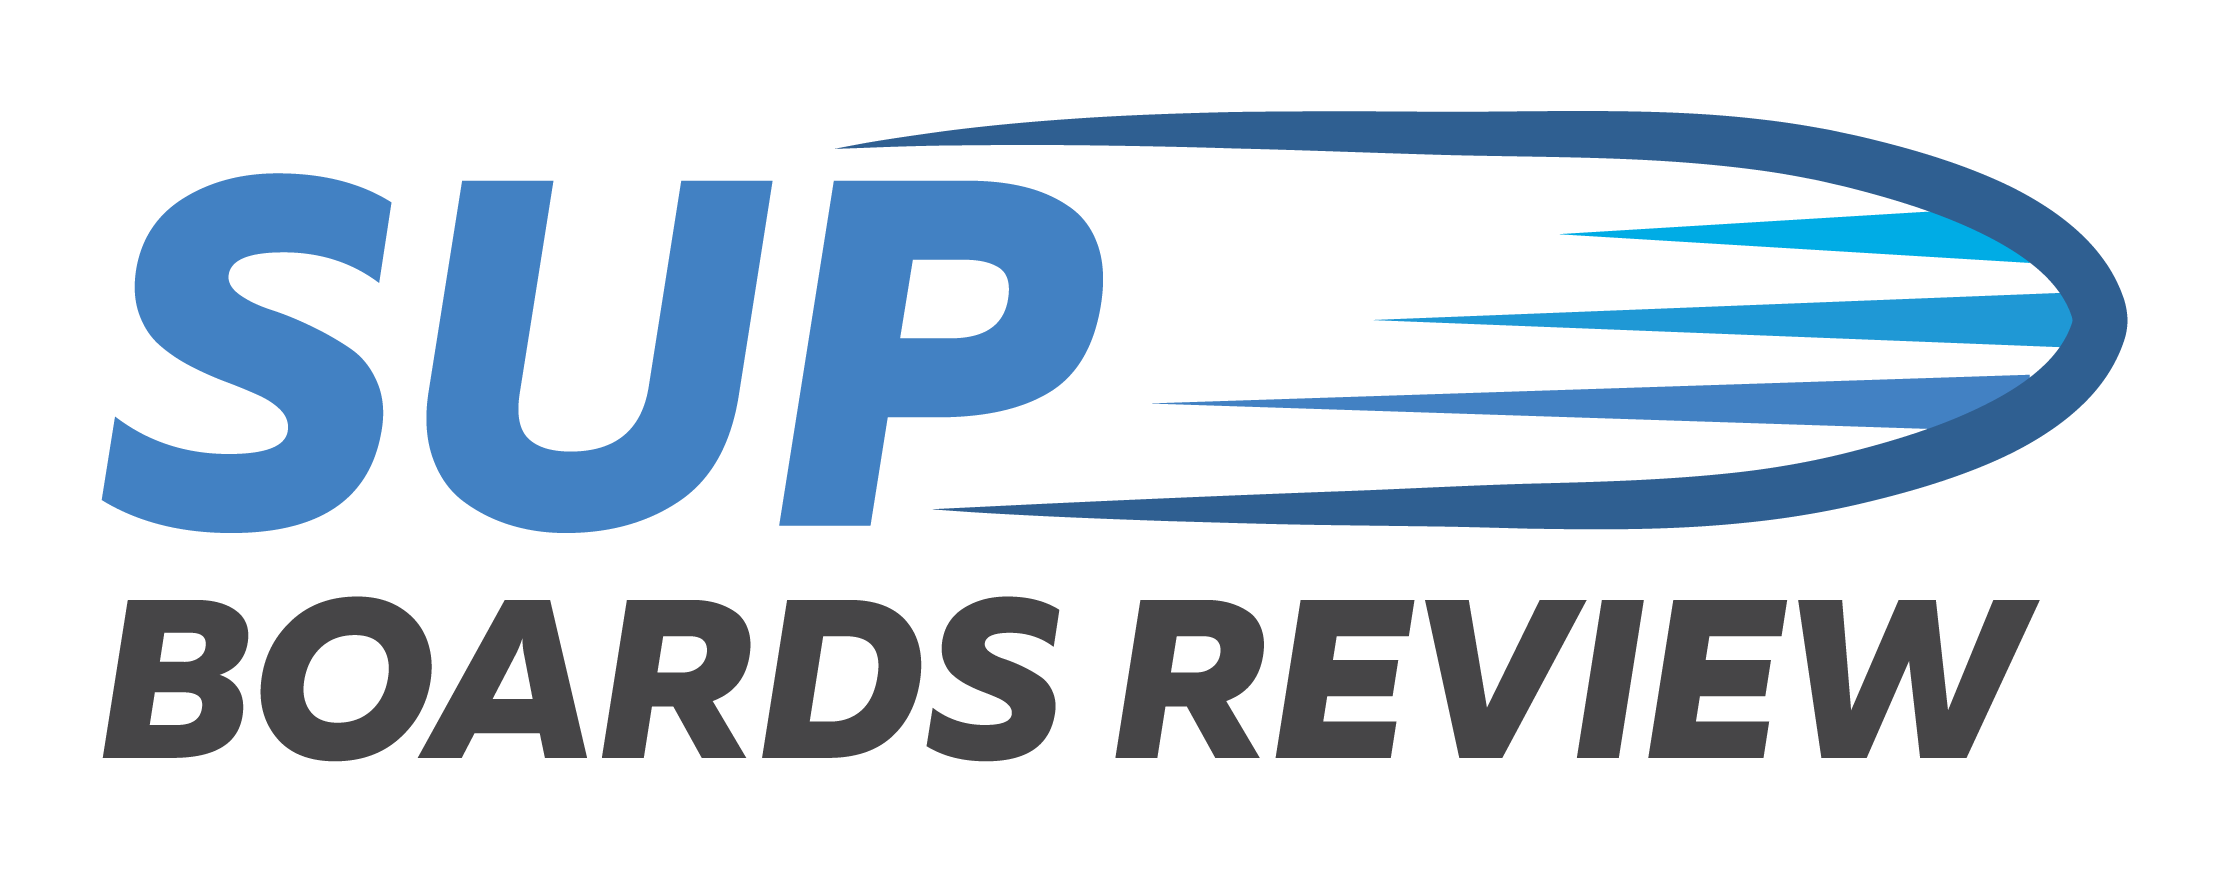 SUP Boards Review Announces New Offers and Coupons For 2020